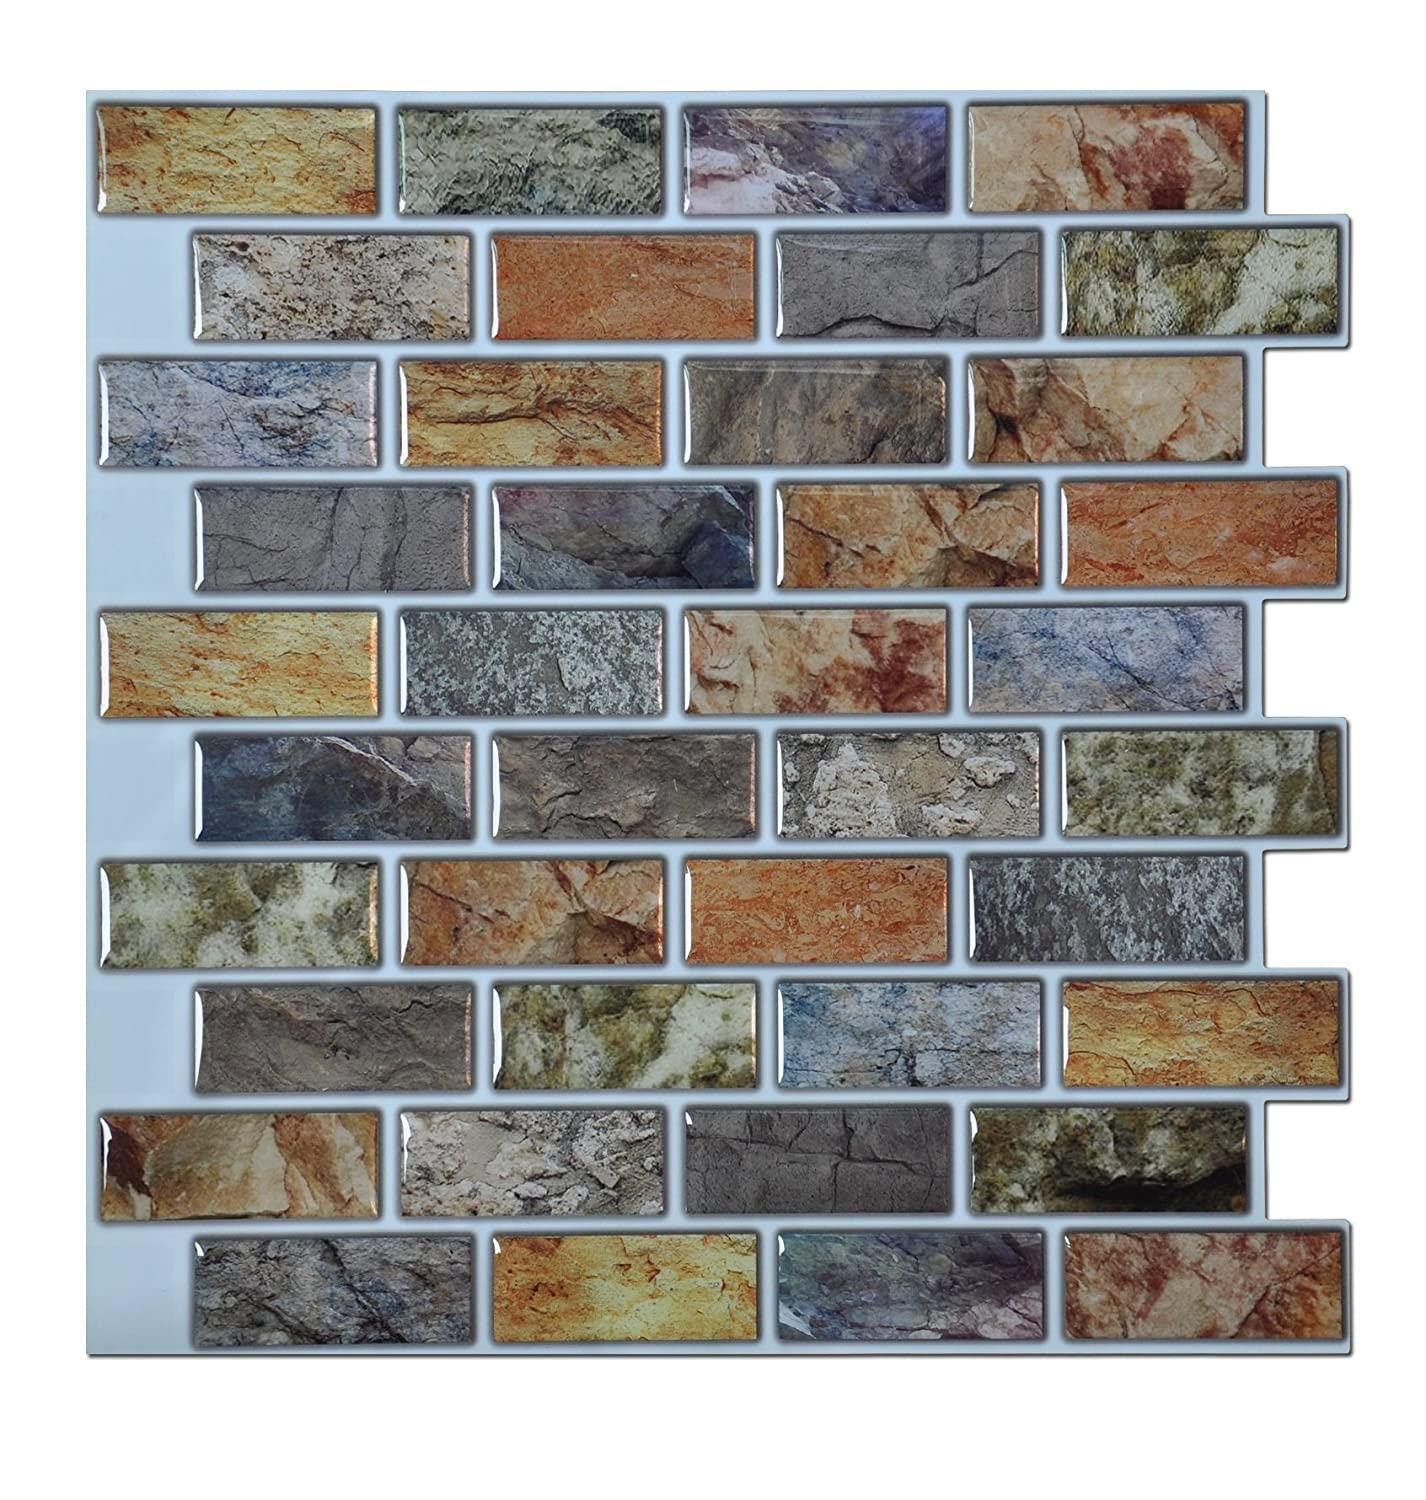 Art3d Peel U0026 Stick Bathroom/Kitchen Backsplash Tiles, 6 Piece     Amazon.com